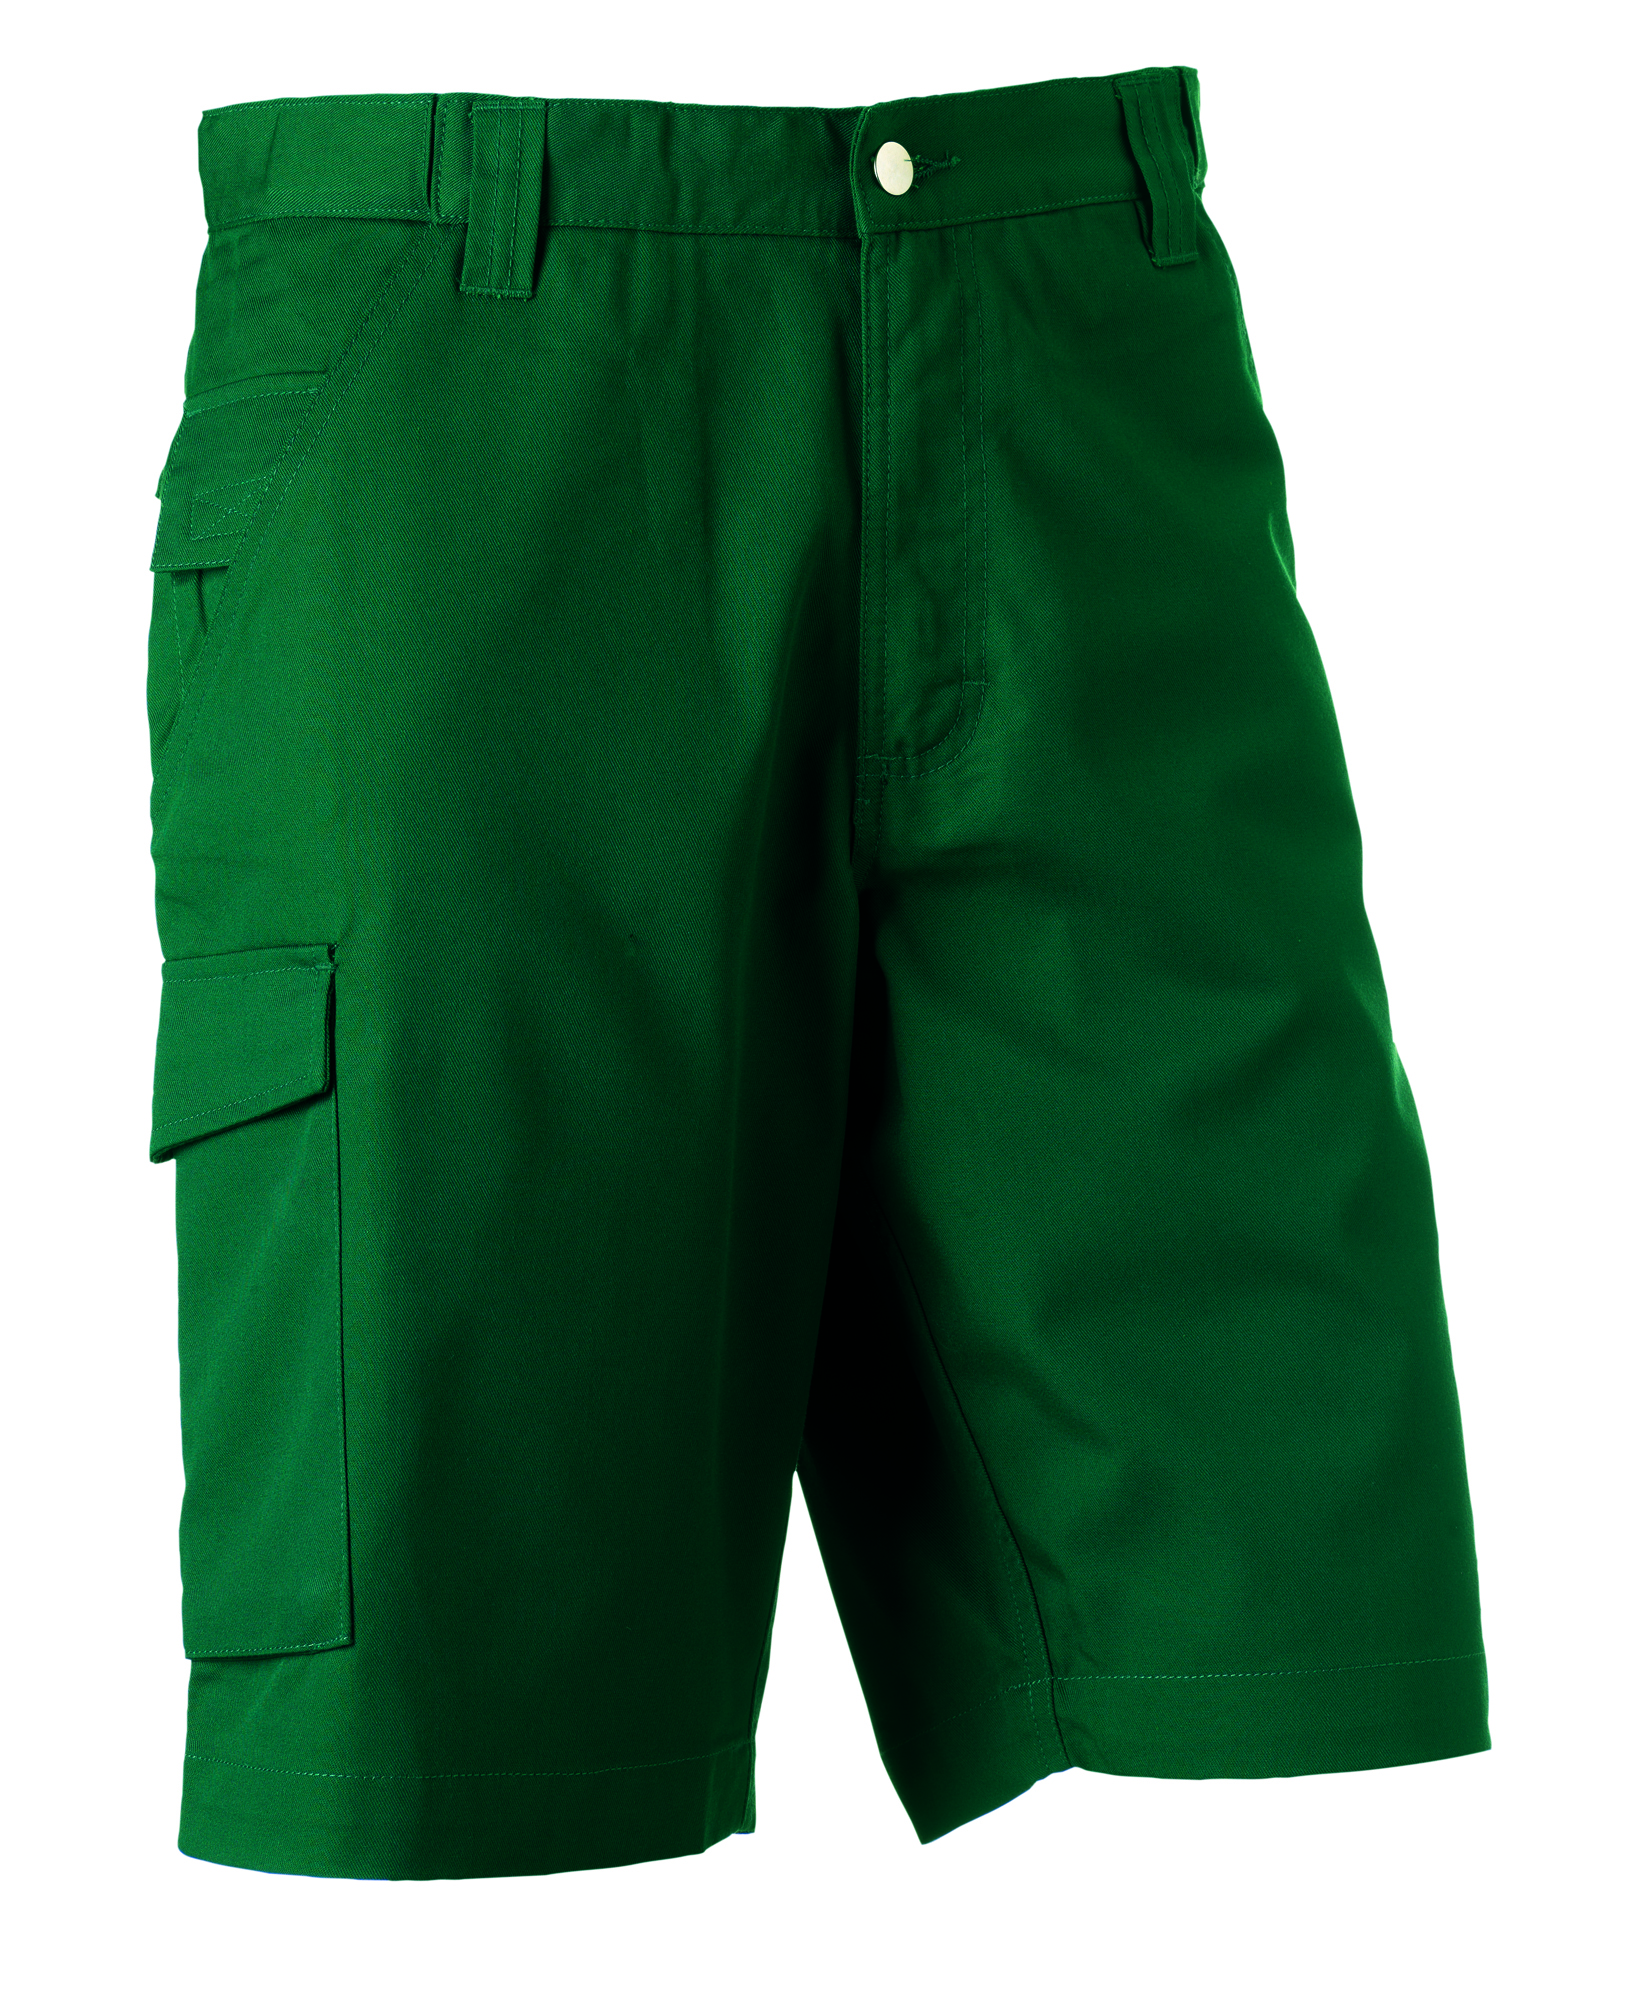 Polycotton Twill Shorts - Bottle Green - 30